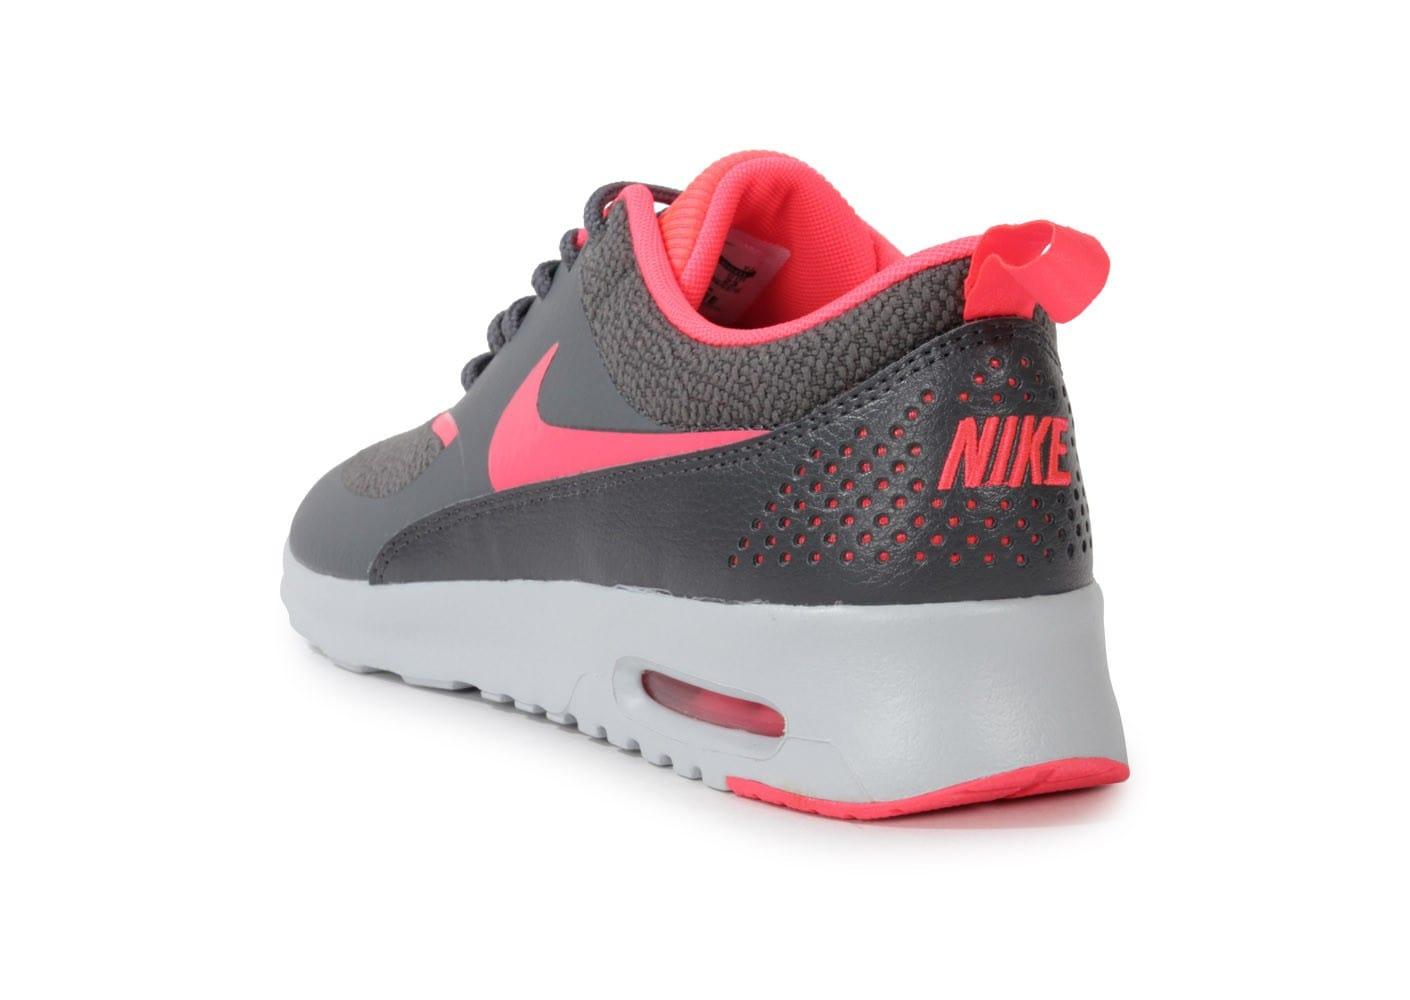 nike air max thea grise rose chaussures chaussures chausport. Black Bedroom Furniture Sets. Home Design Ideas